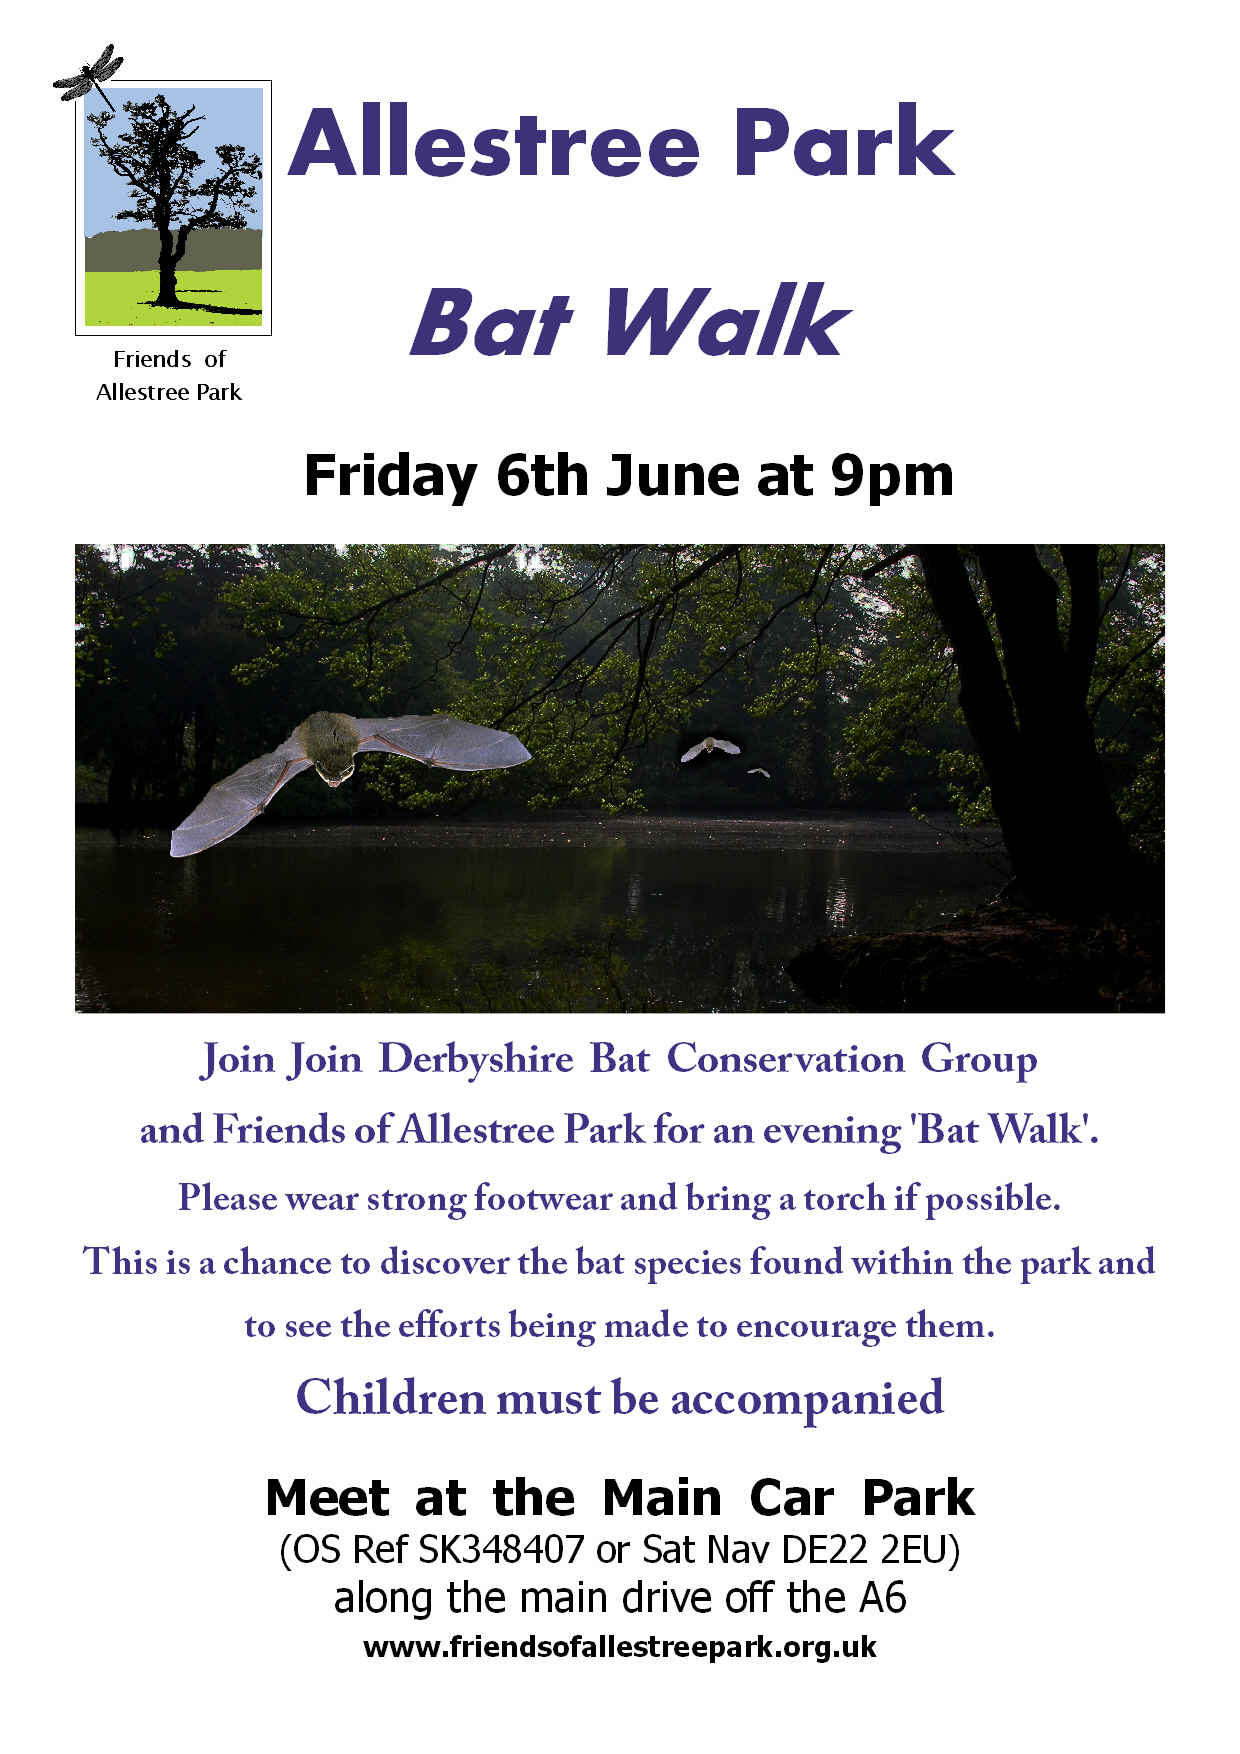 bat walk poster june 2014